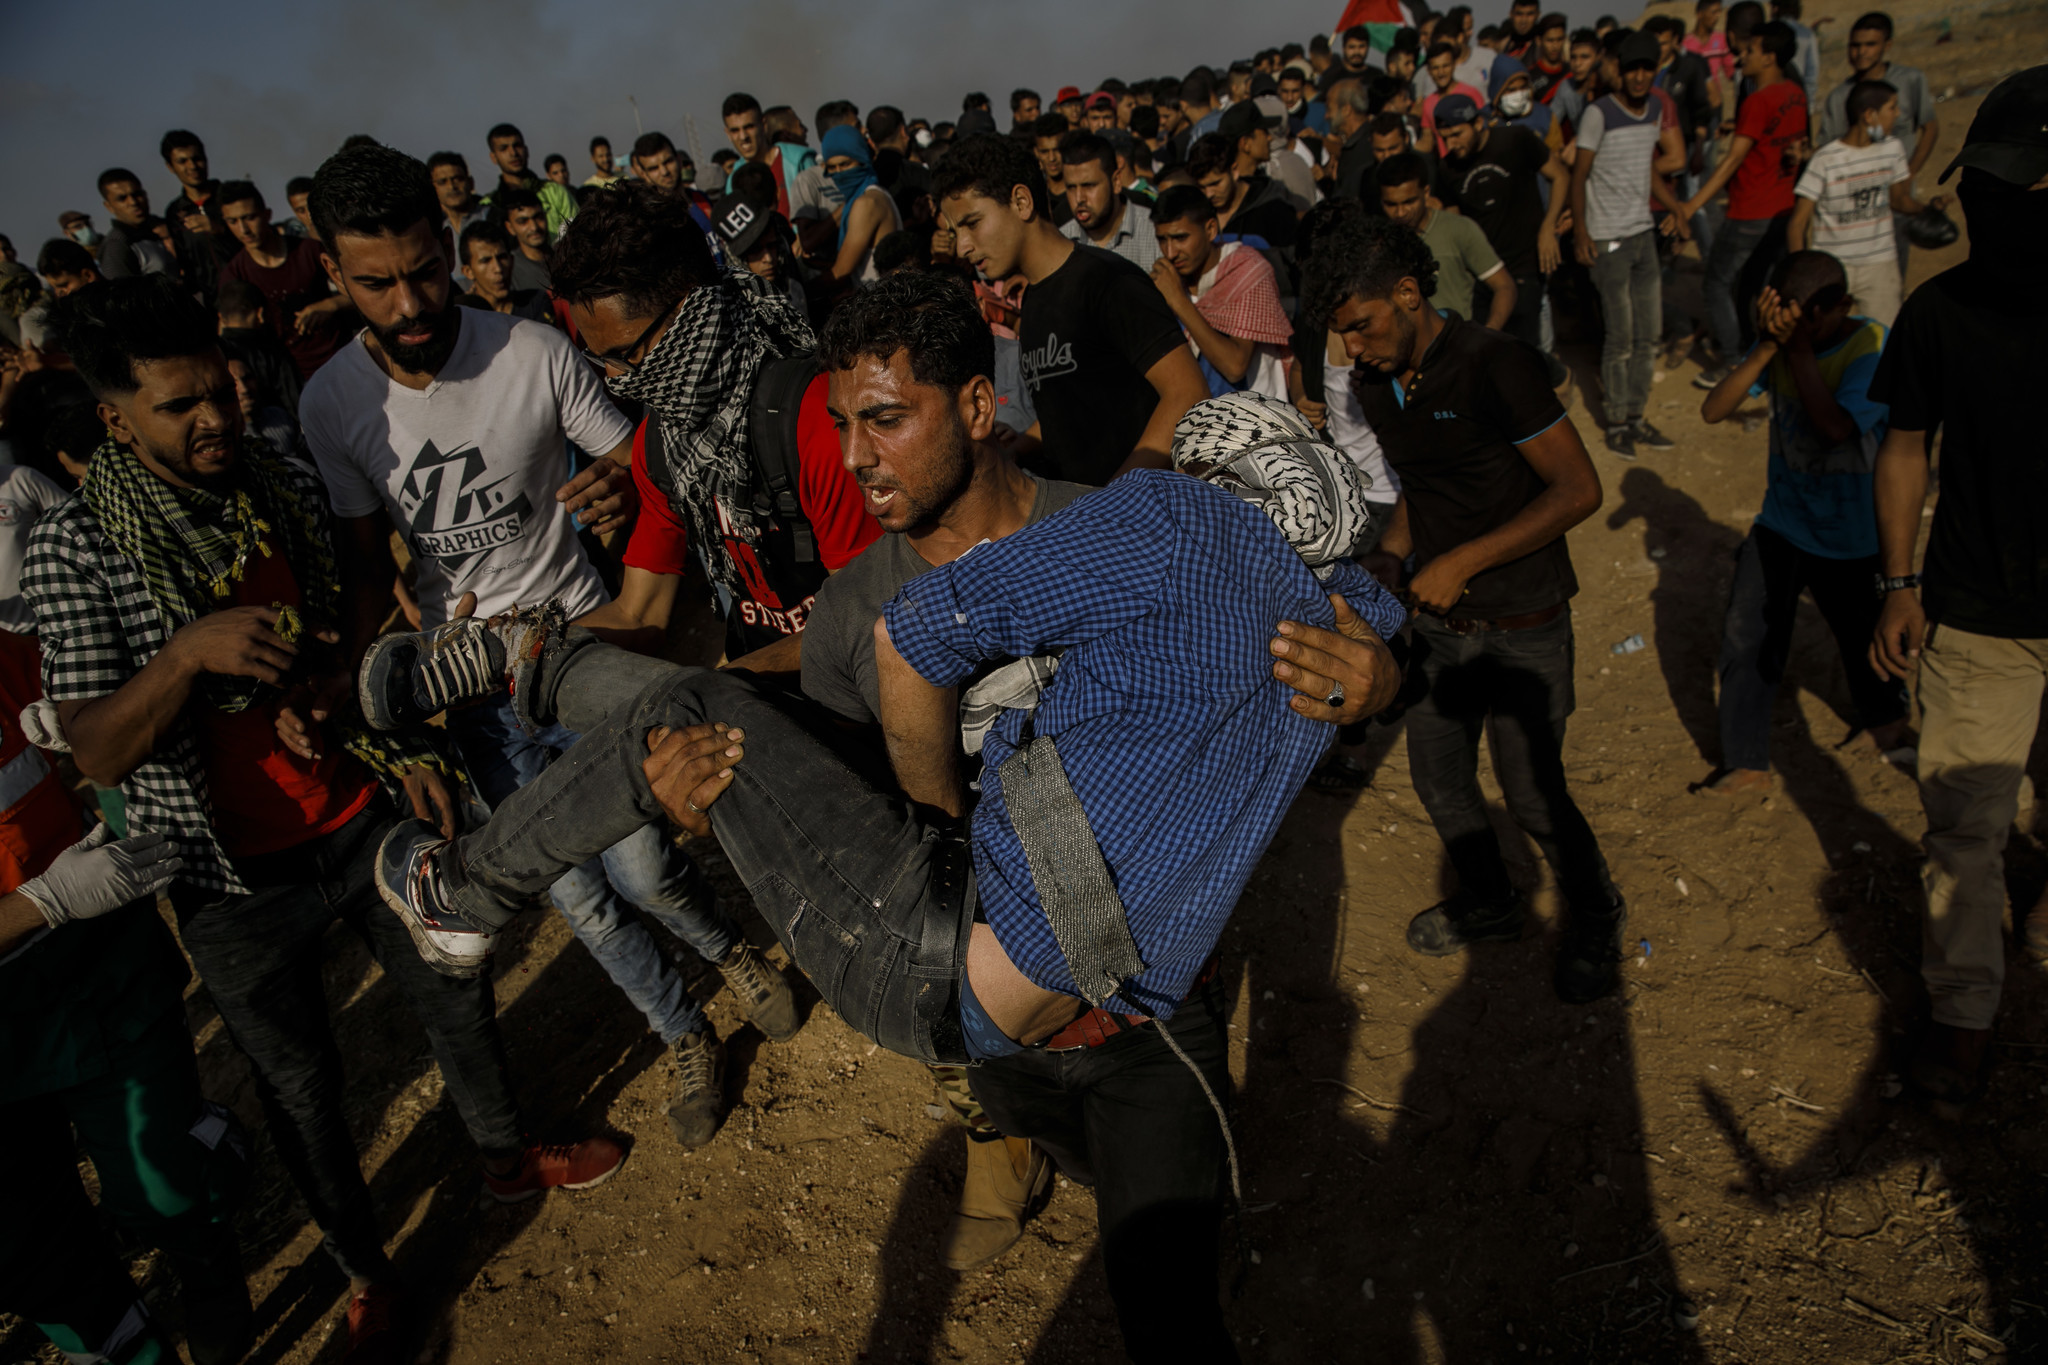 GAZA CITY, GAZA STRIP — FRIDAY, MAY 11, 2018: A Palestinian man carry a fellow protester out after